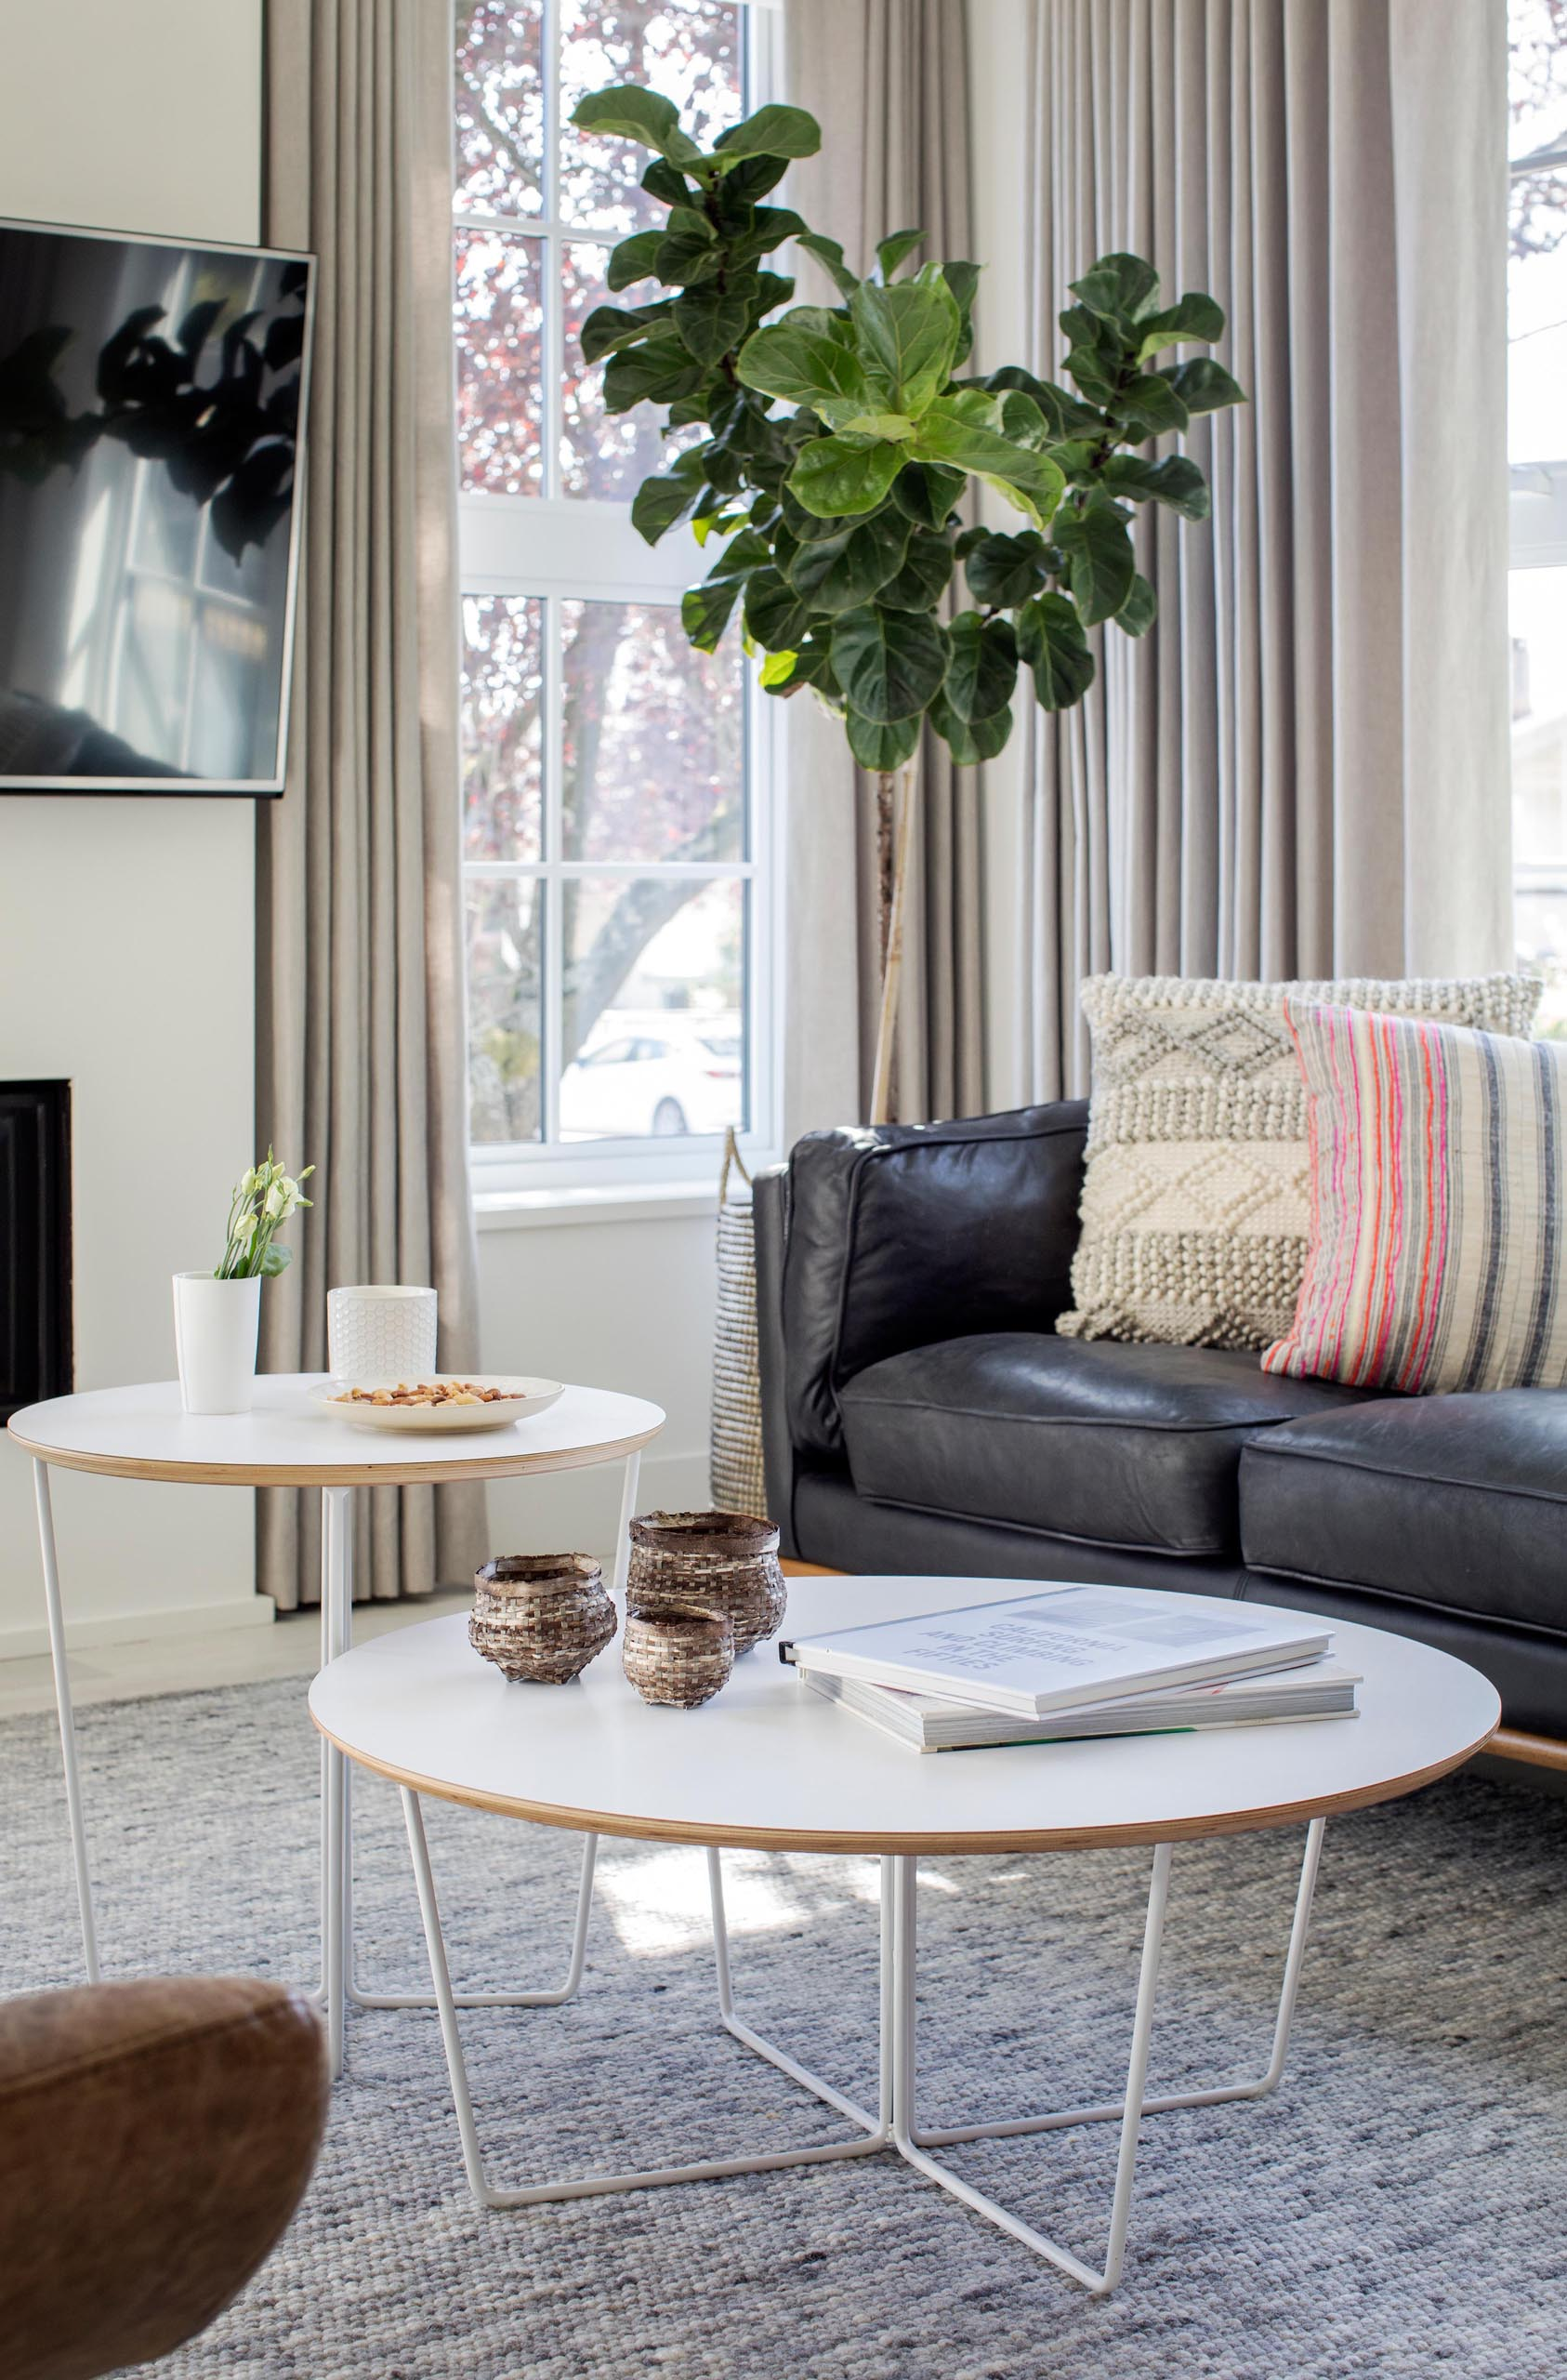 A modern living room with two round white coffee tables.